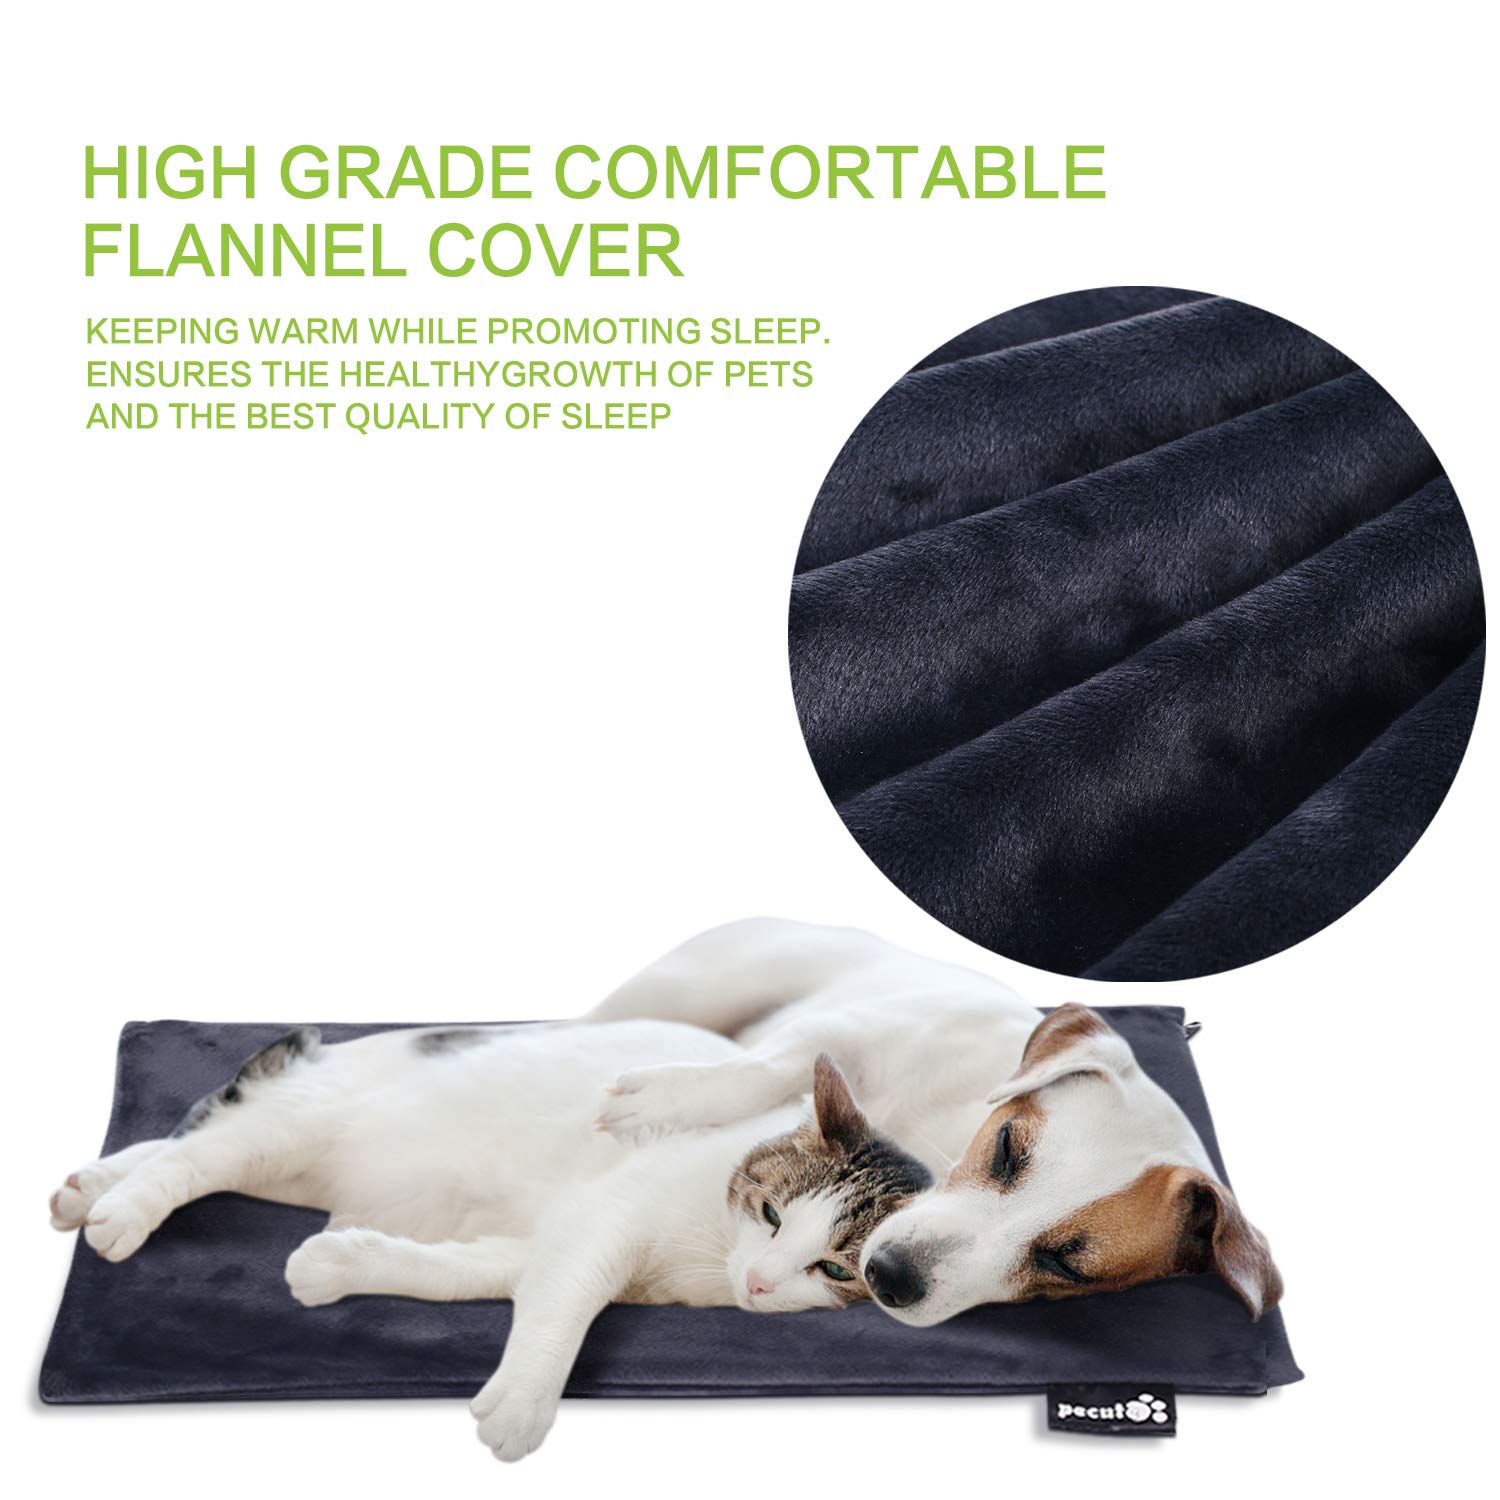 Pecute Pet Heating Pad Medium 40 x 50 cm,Electric Heat Mat Waterproof with Removable Flannel Cover for Large Cats Medium Dogs